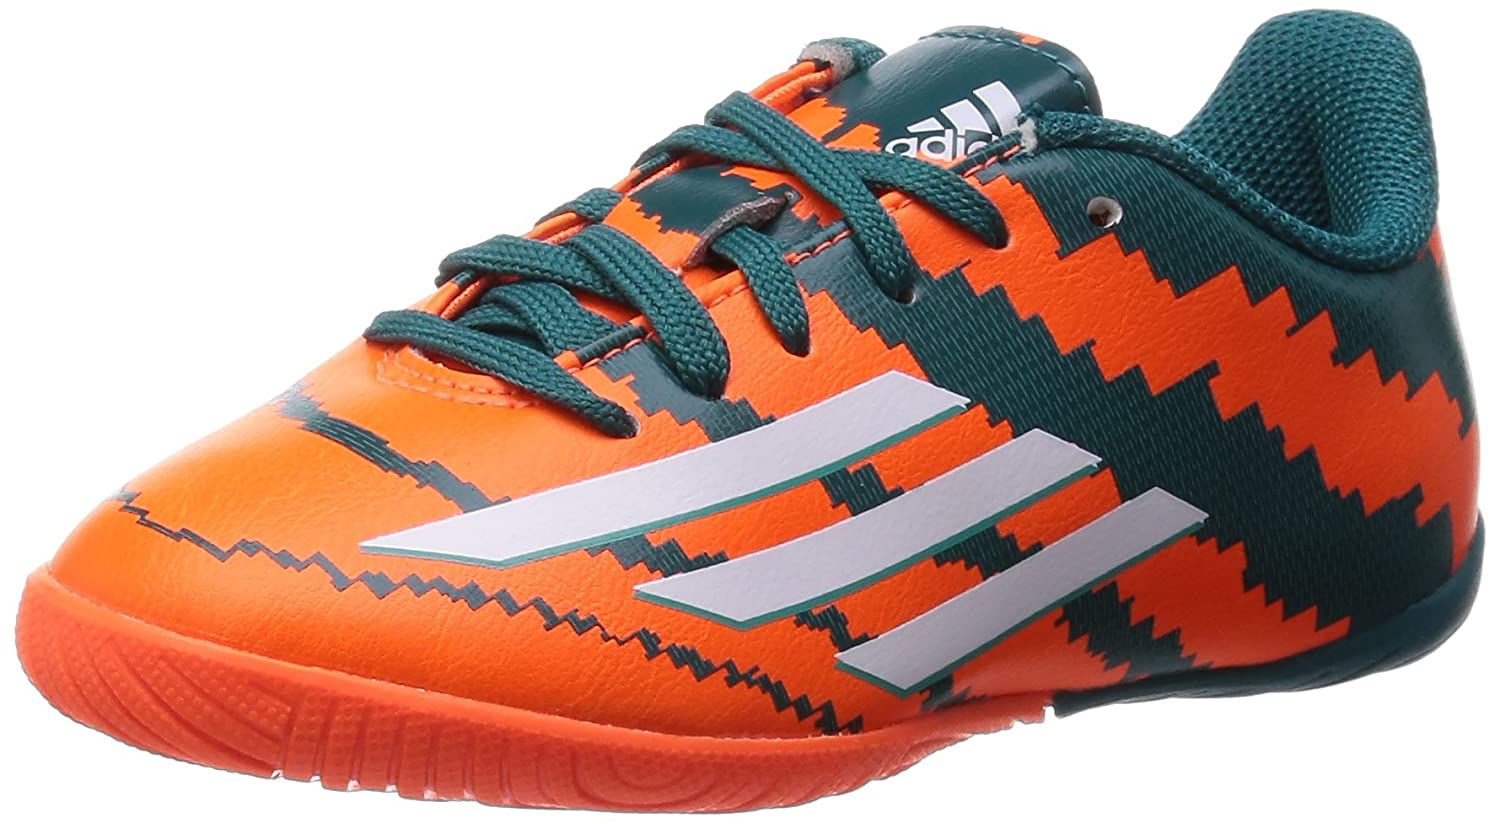 Adidas Messi mirosar10 10.3 IN Schuhes